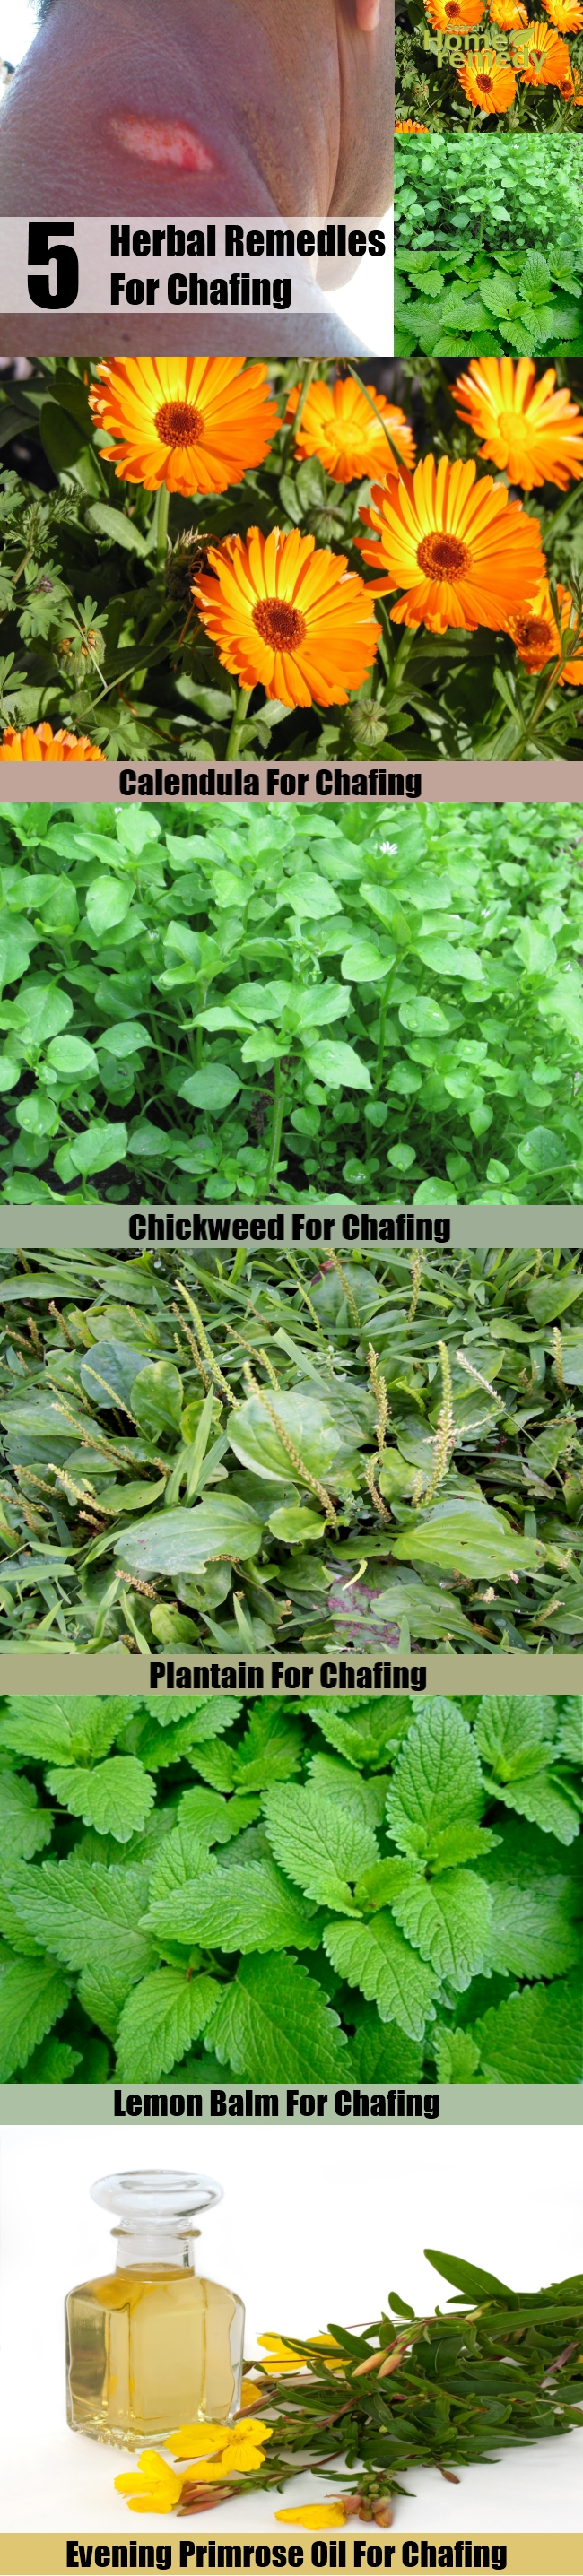 5 Useful Herbal Remedies For Chafing